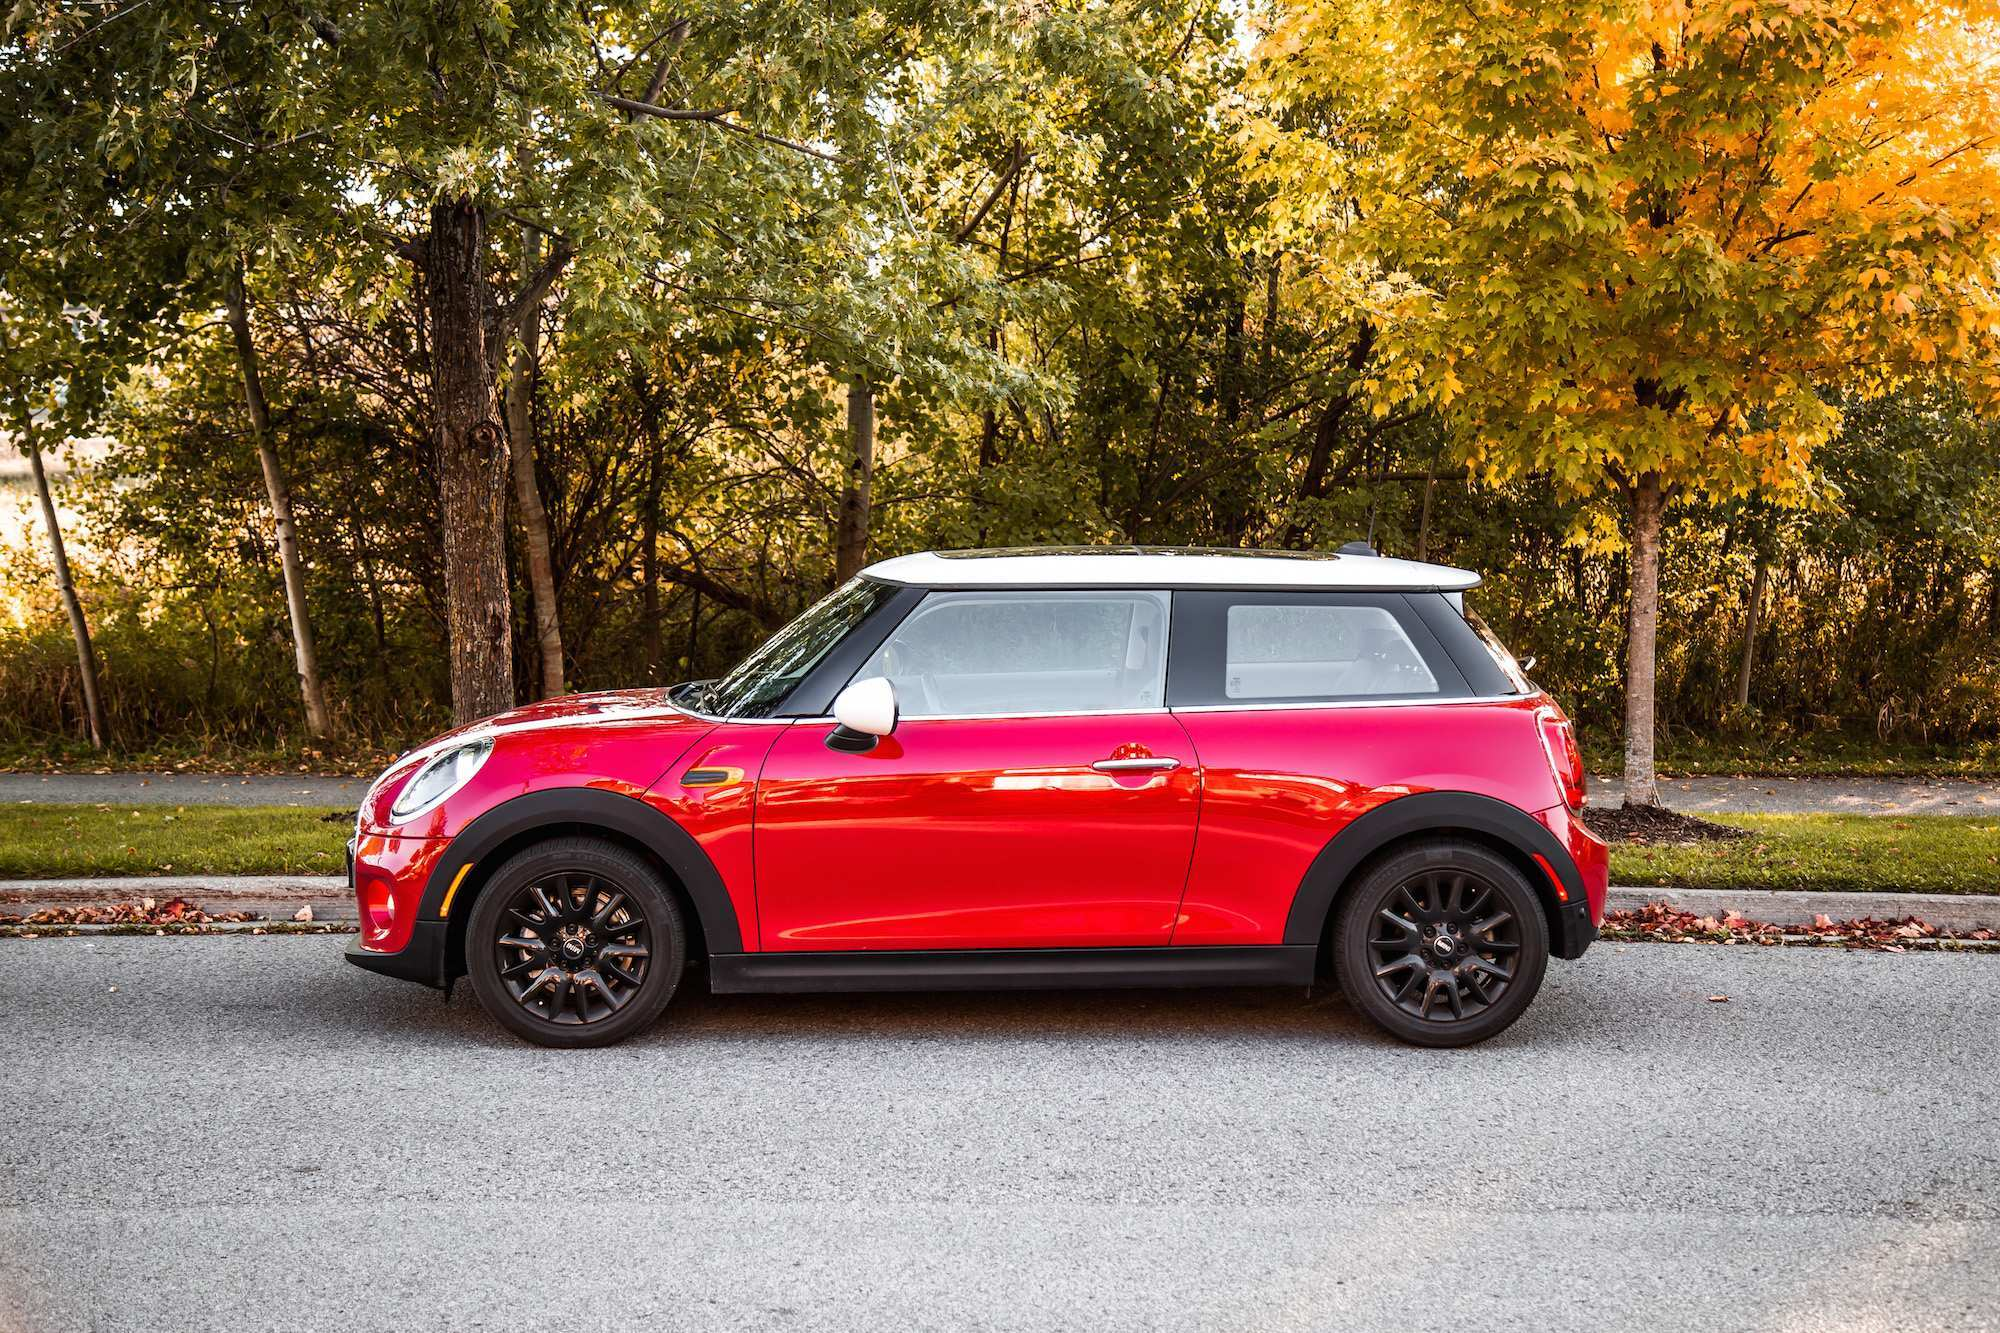 39 All New 2019 Mini Cooper 3 Review And Release Date